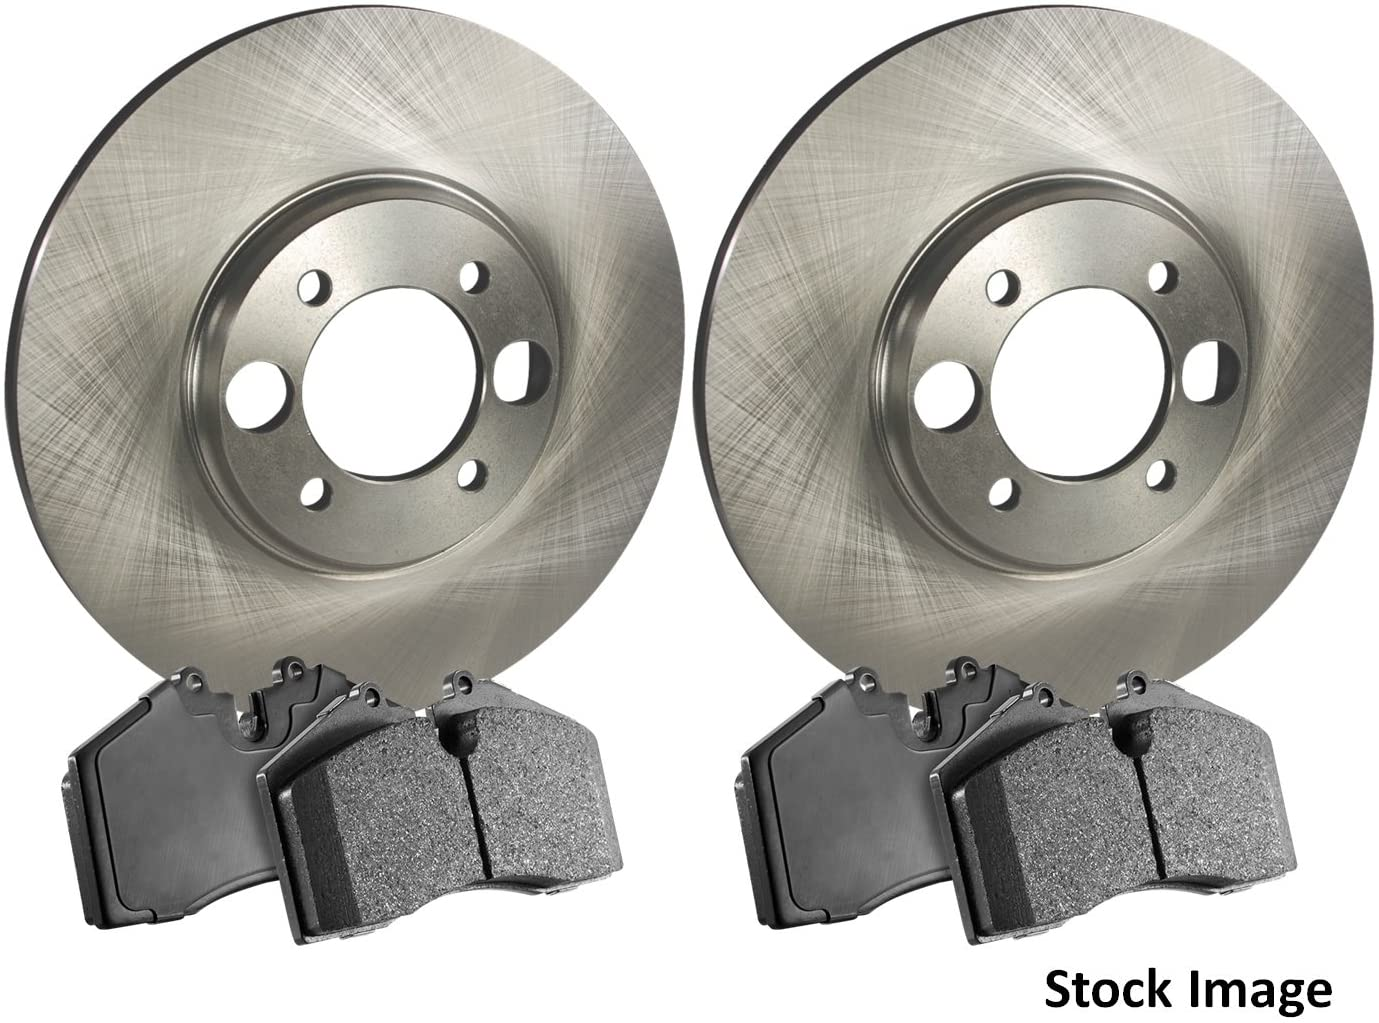 Stirling - 2017 For Lexus IS350 Front Left Disc Brake Rotors and Ceramic Brake Pads RWD (Note: Front Left; RWD)